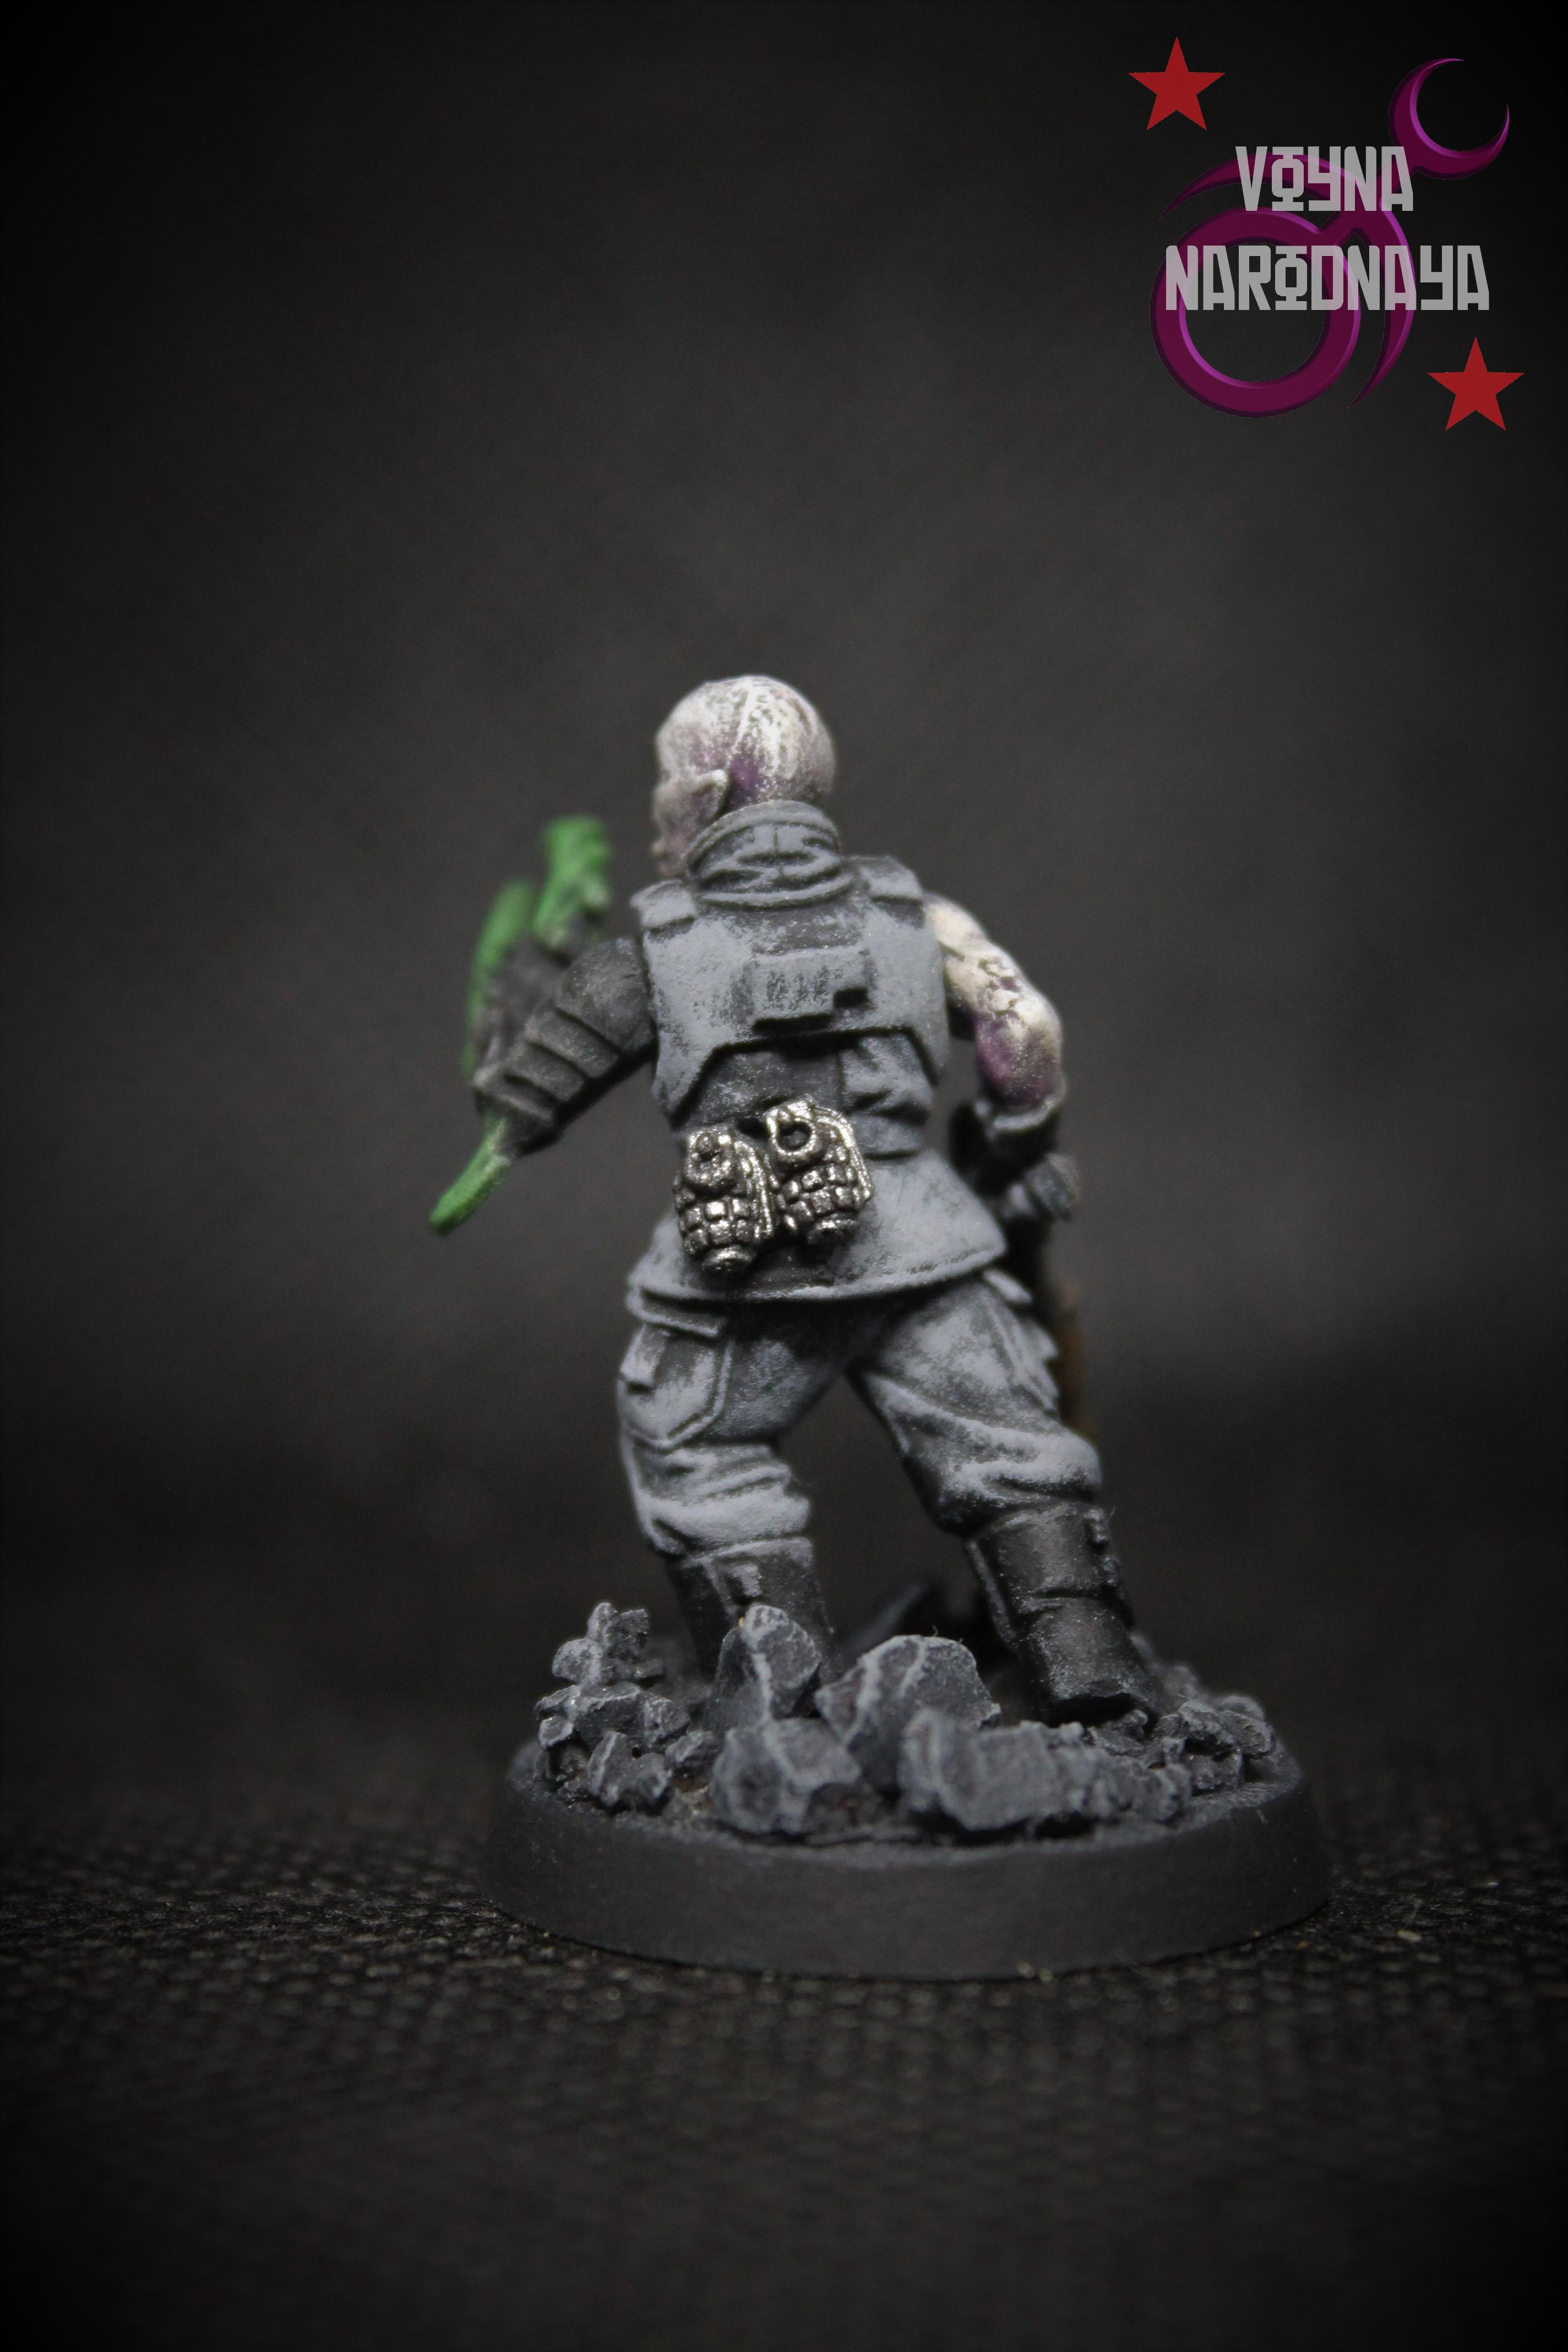 Assassin, Astra Militarum, Cadian Shock Troops, Cadians, Daemonettes, Damned, Eastern Front, Eversor, Female, Guard, Heretics, Imperial, Imperial Guard, Kronstadt, Lost, Militia, Planetary Defence Force, Red Army, Renegades, Renegades And Heretics